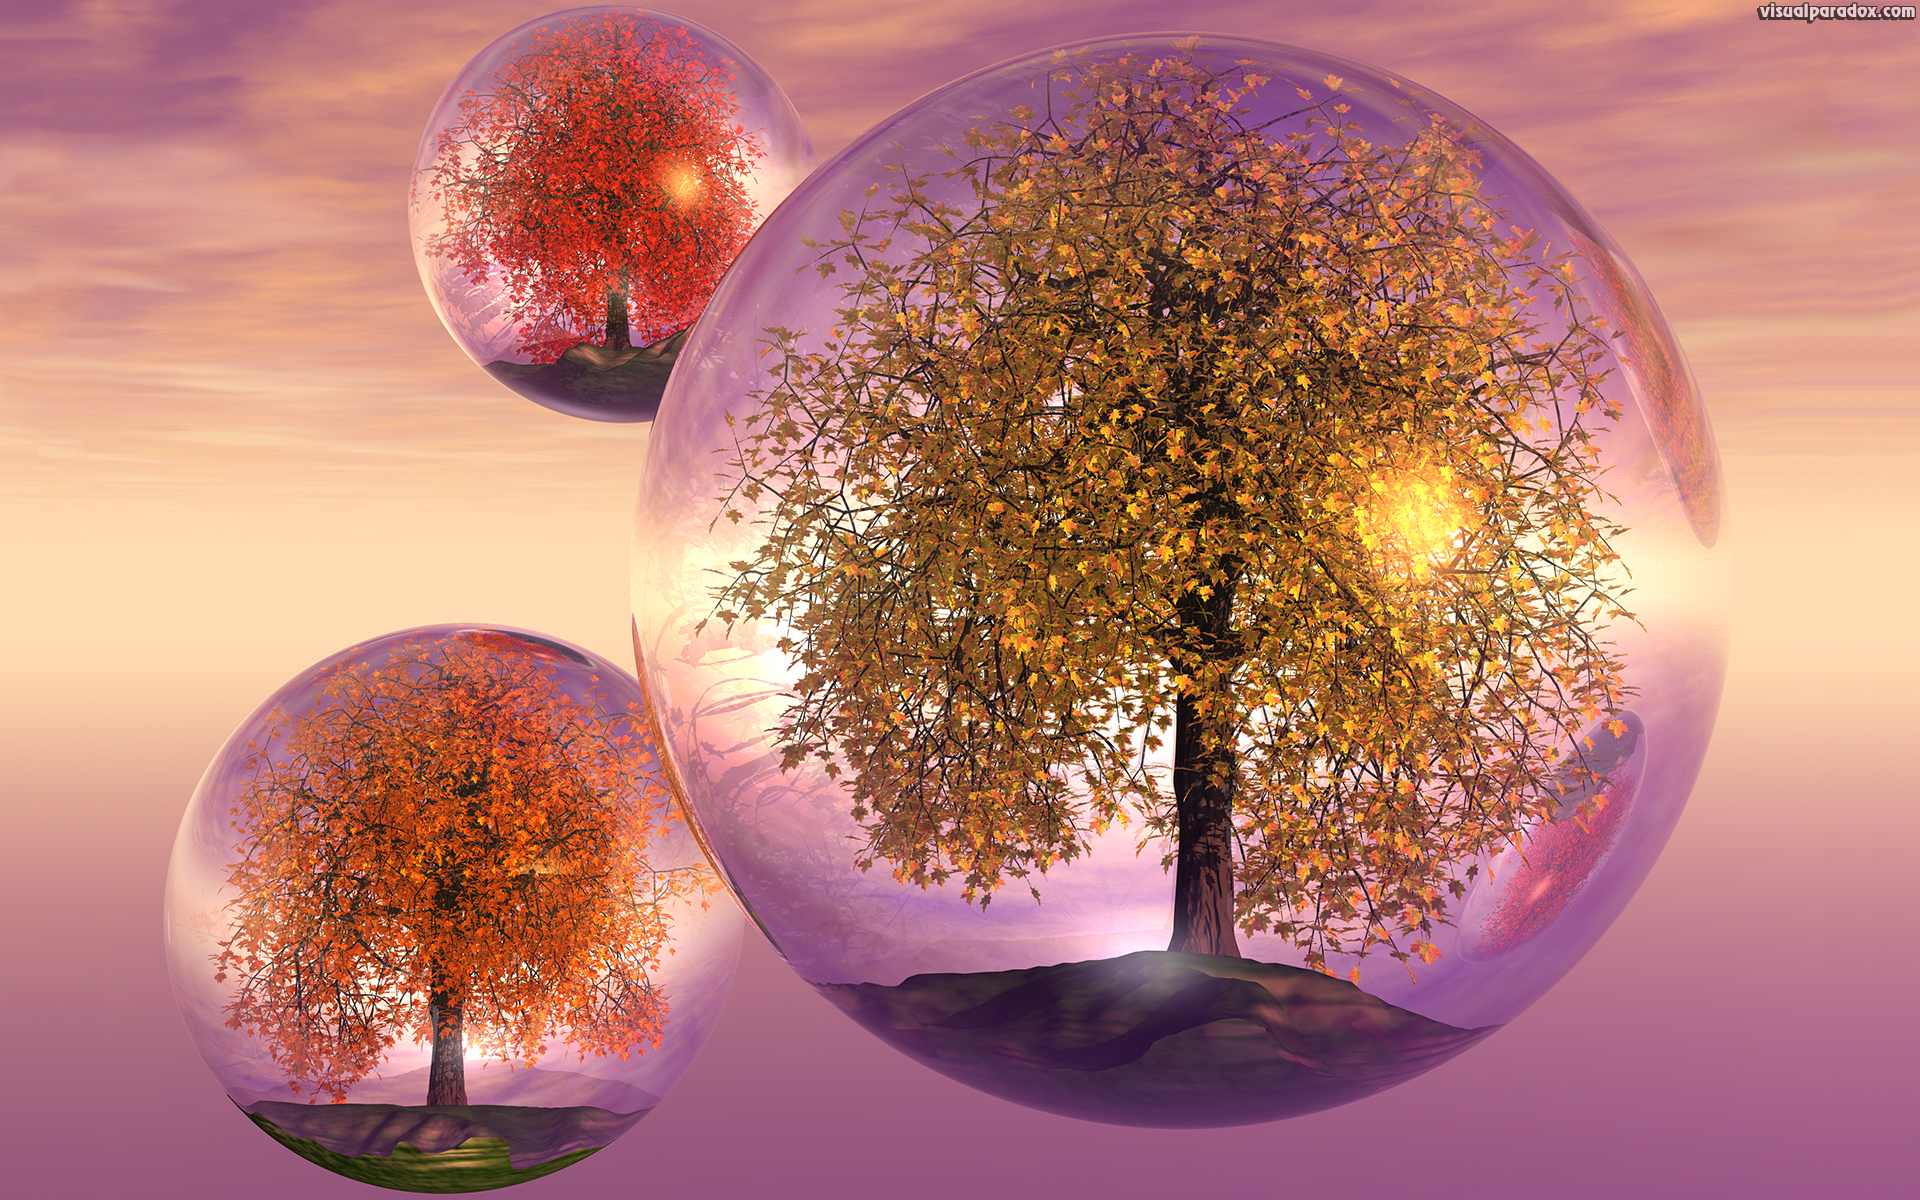 crystals, trees, autumn, fall, float, bubbles, balls, fly, terrarium, colorful, spheres, globes, crystal, sphere, balls, 3d, wallpaper